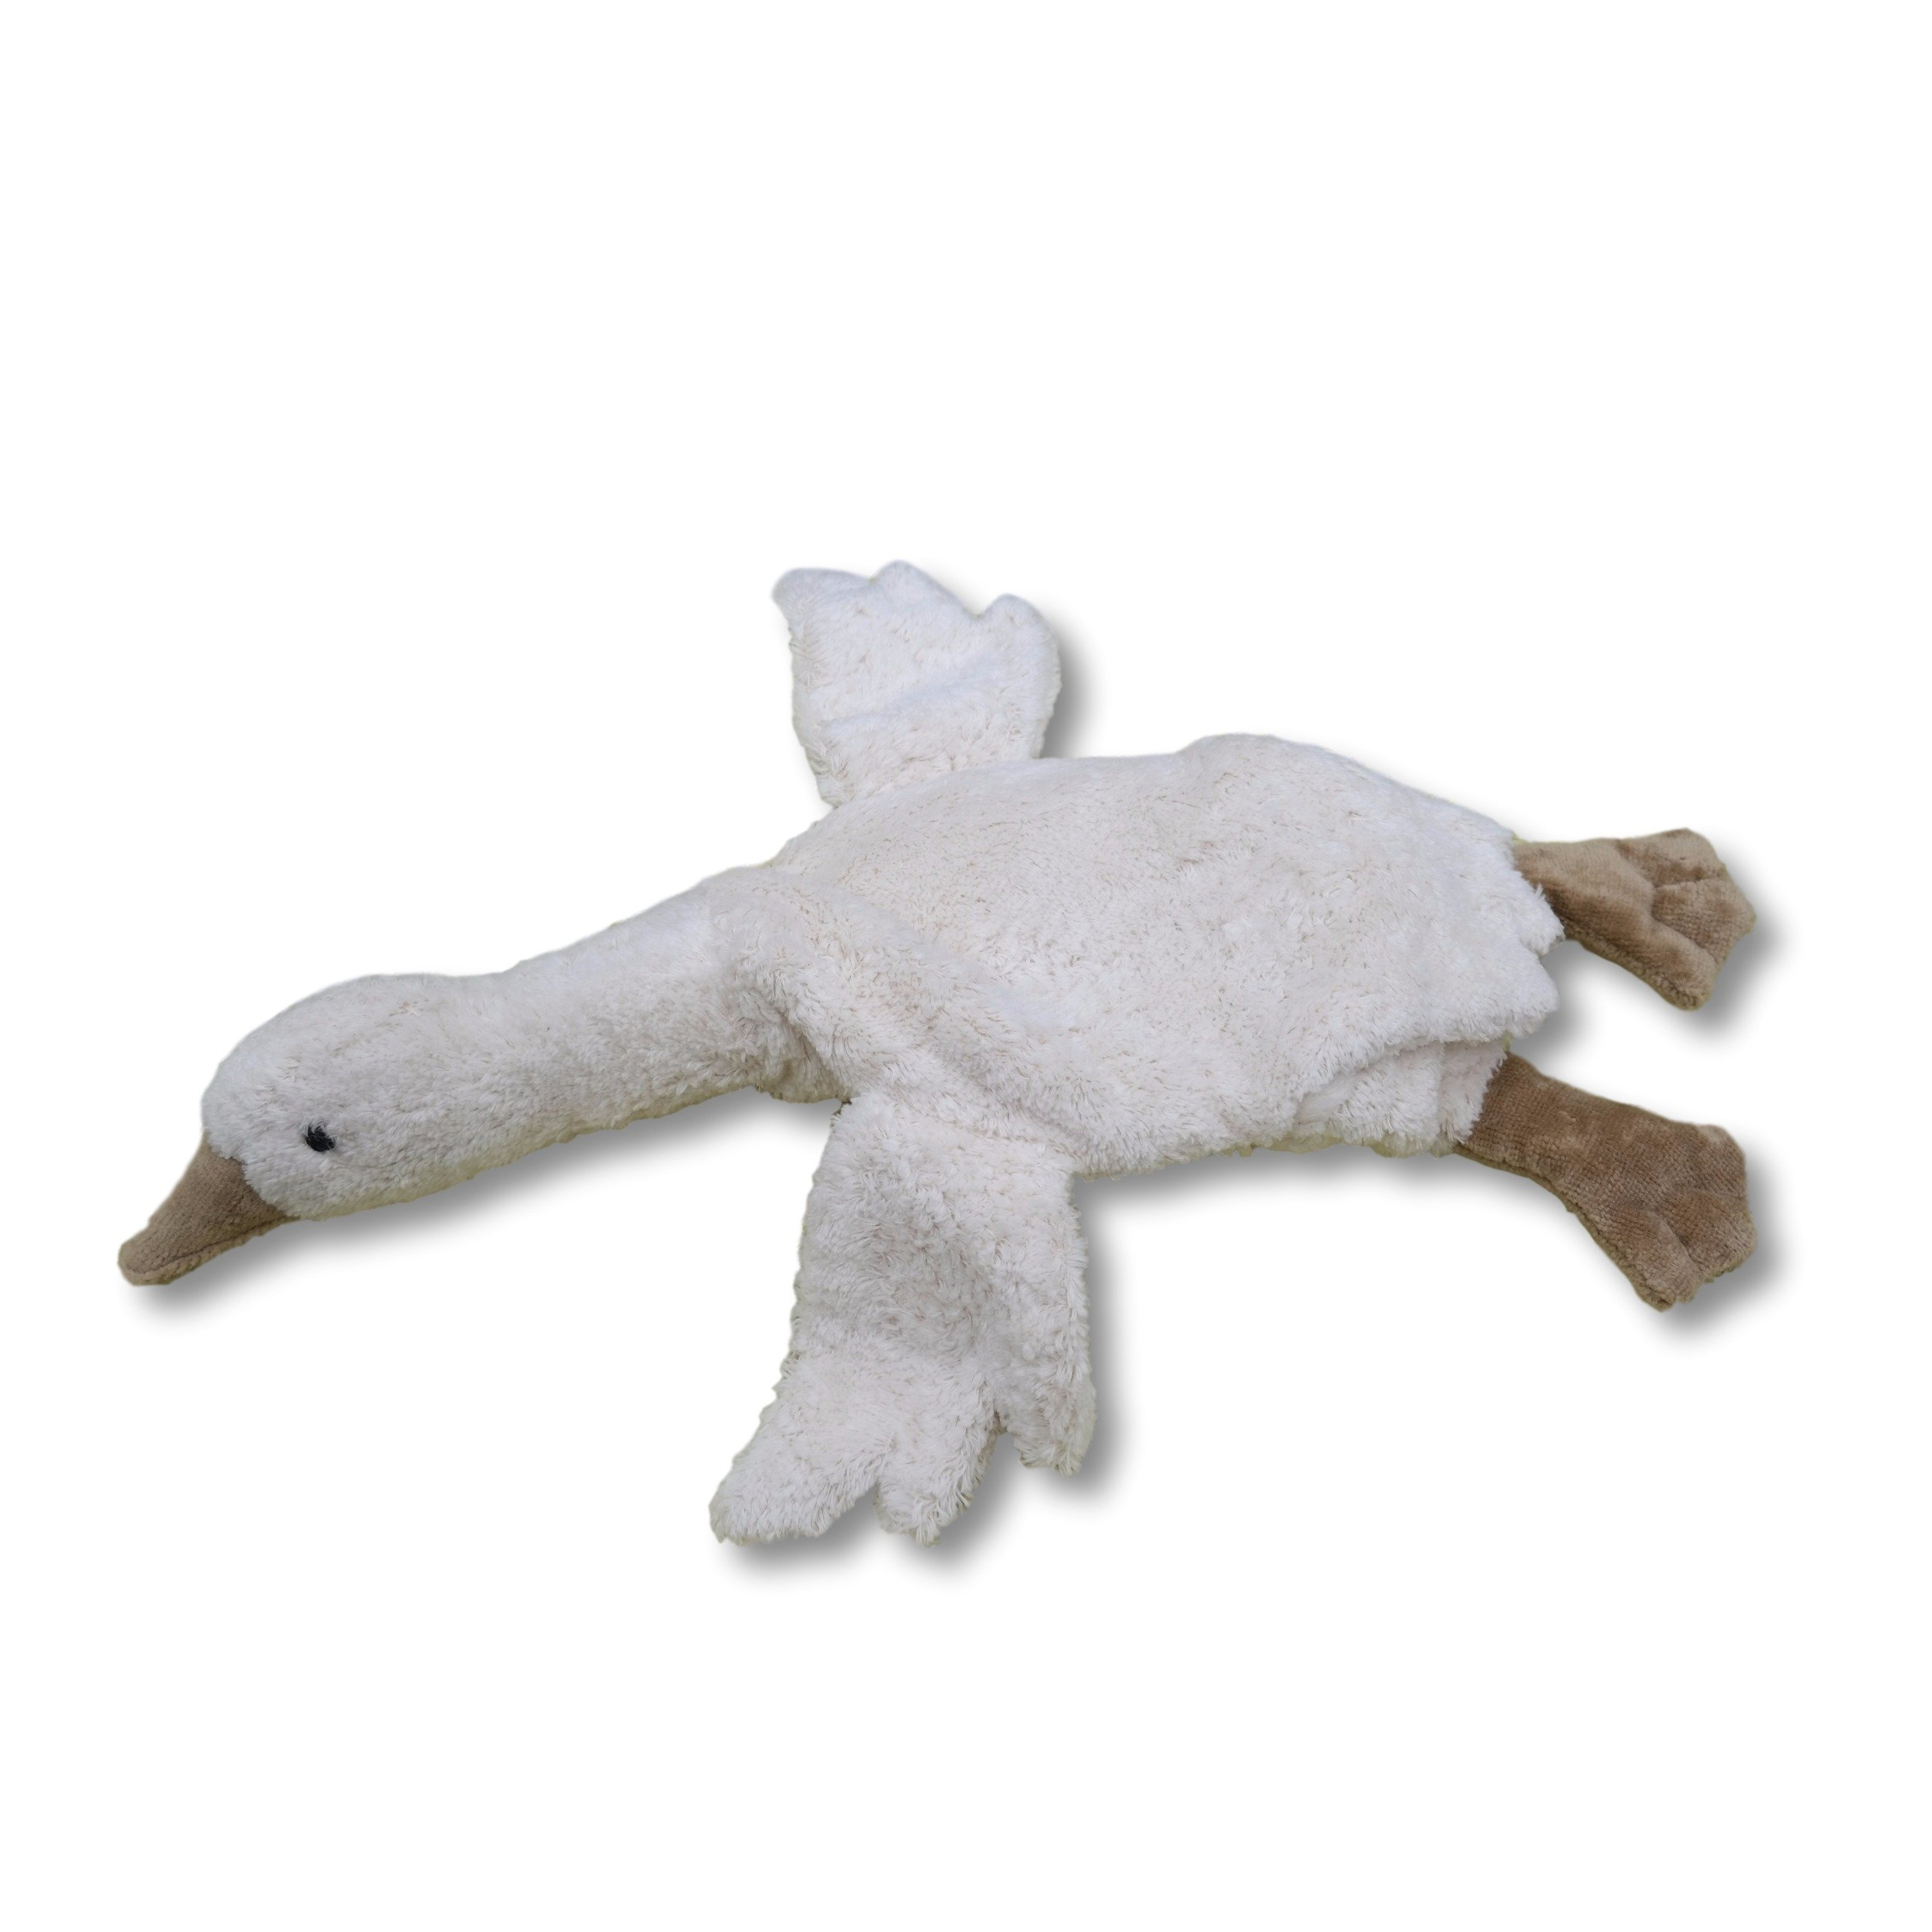 Senger Stuffed Animals - Organic Cotton Goose Warming Pillow - with Cherry Pits by Senger Tierpuppen